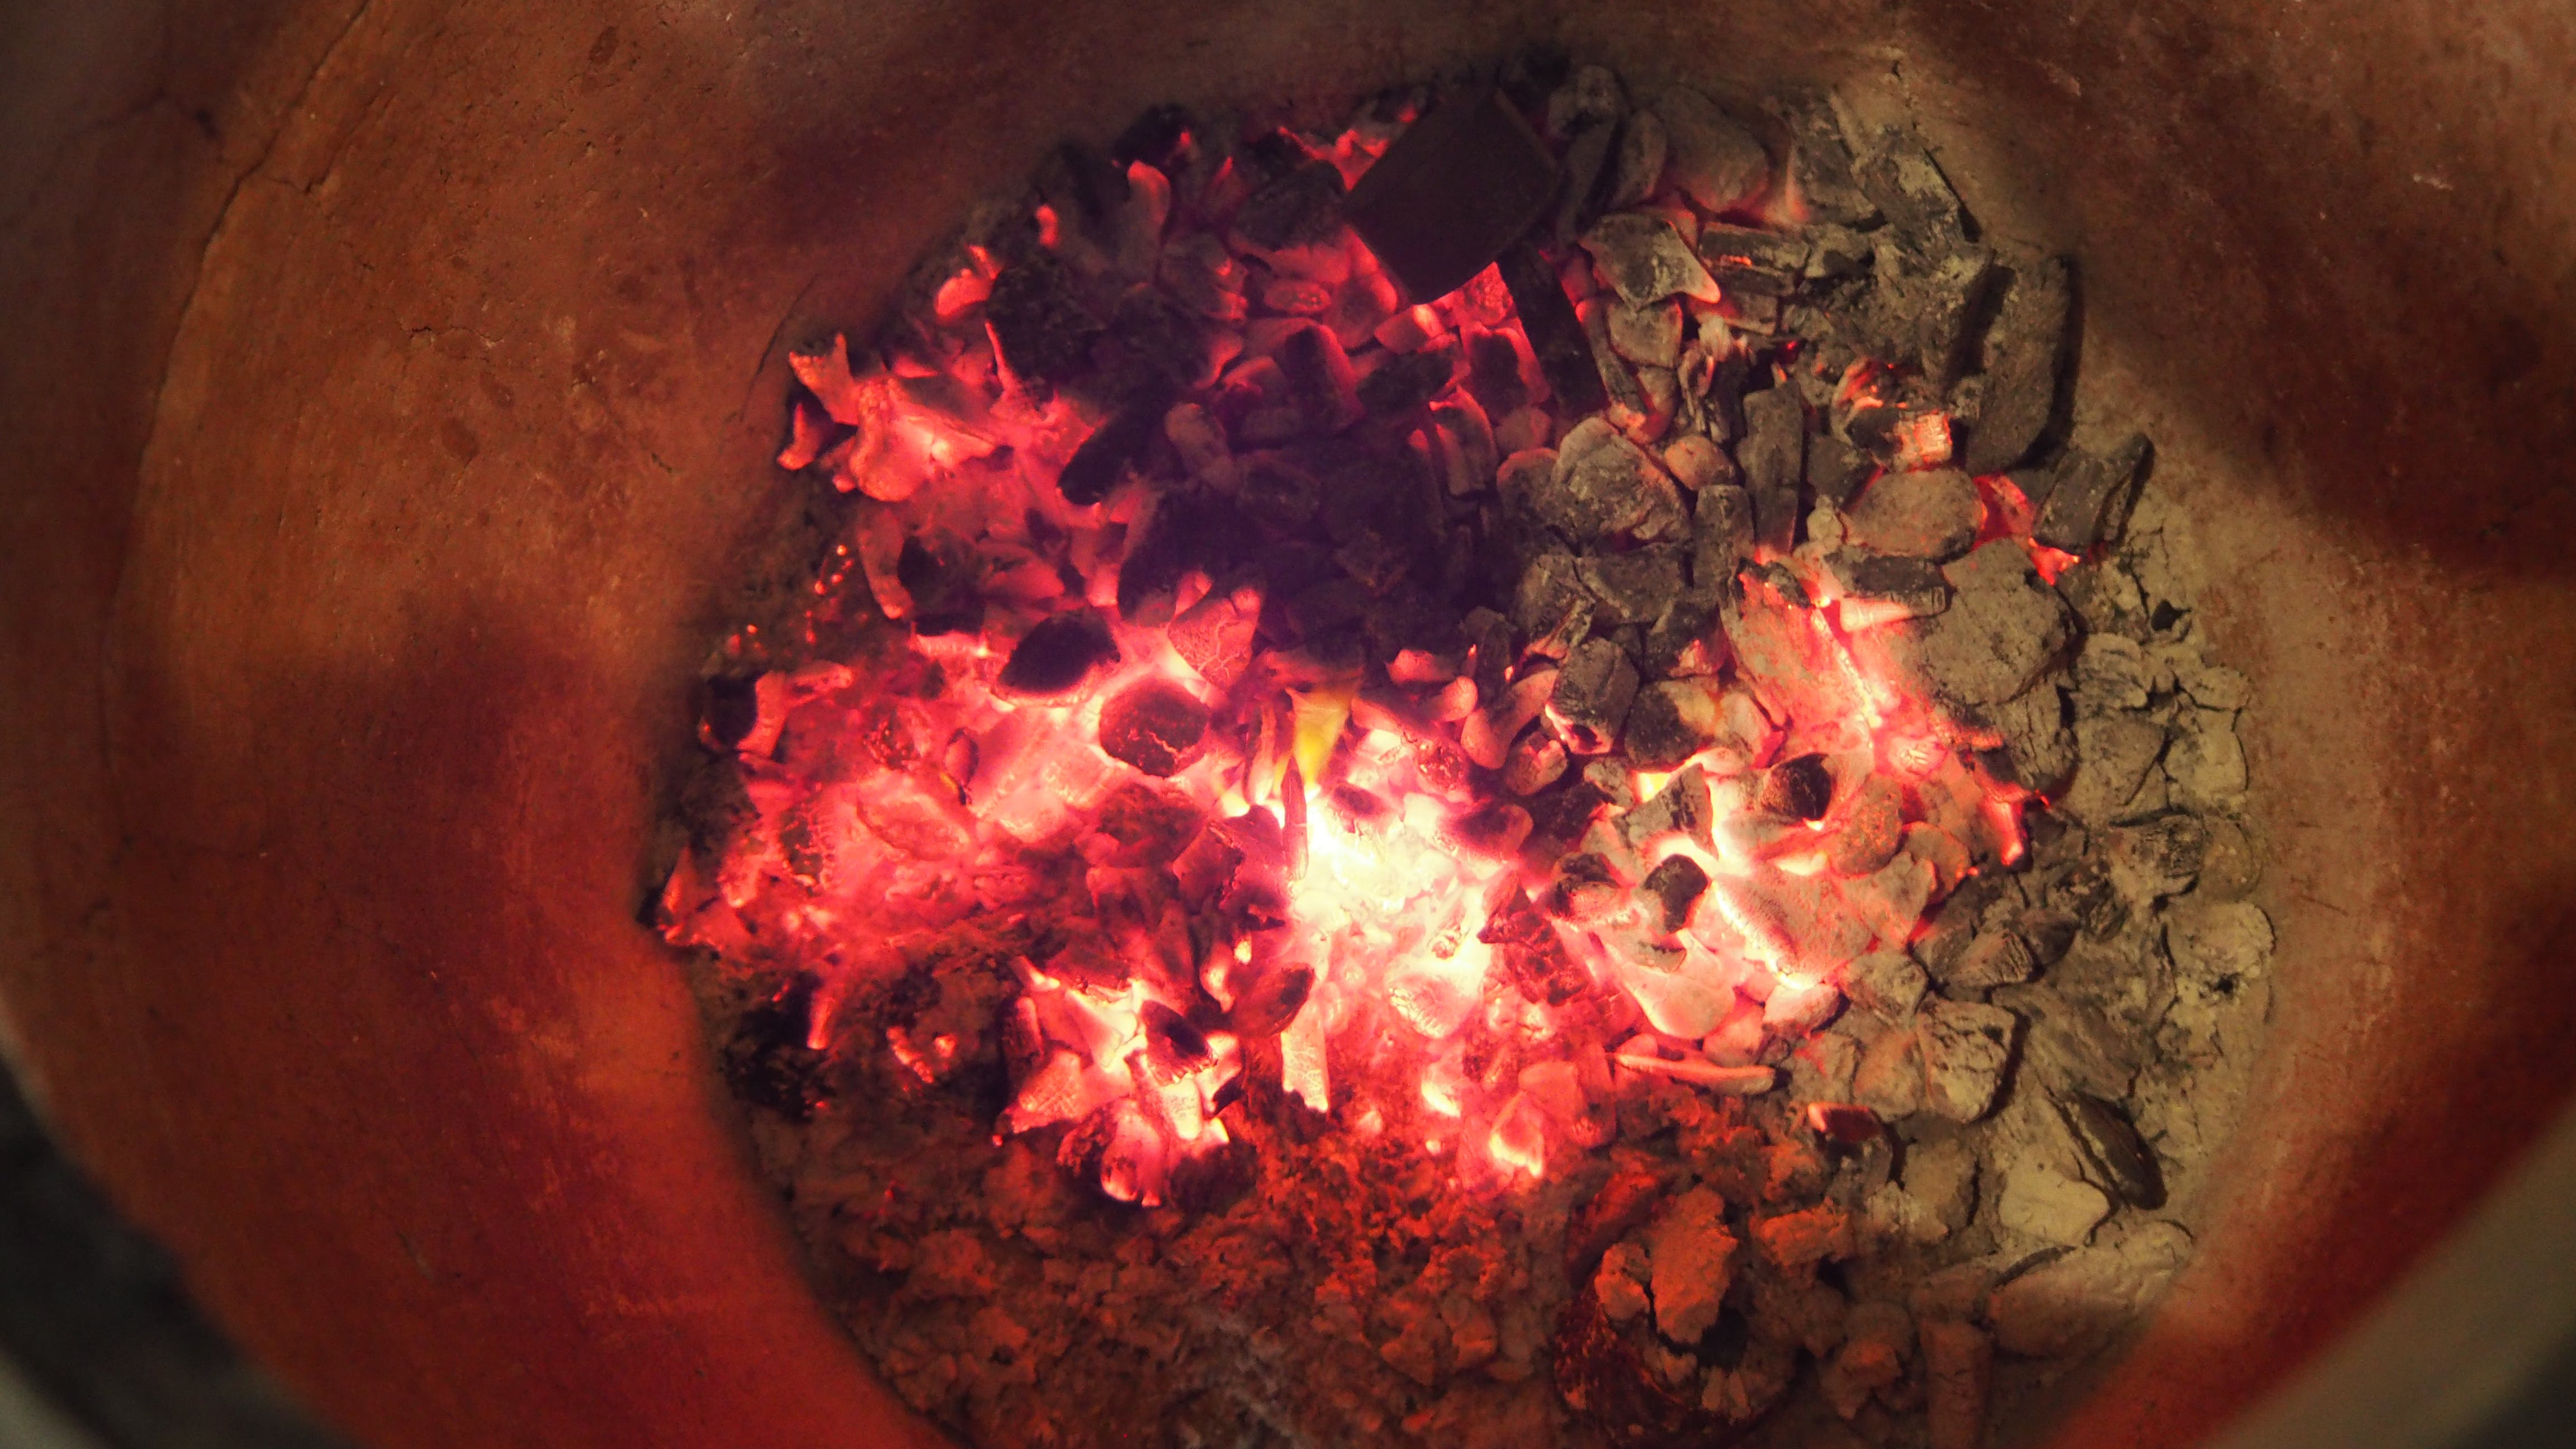 Free stock photo of clay oven, fire, indian oven